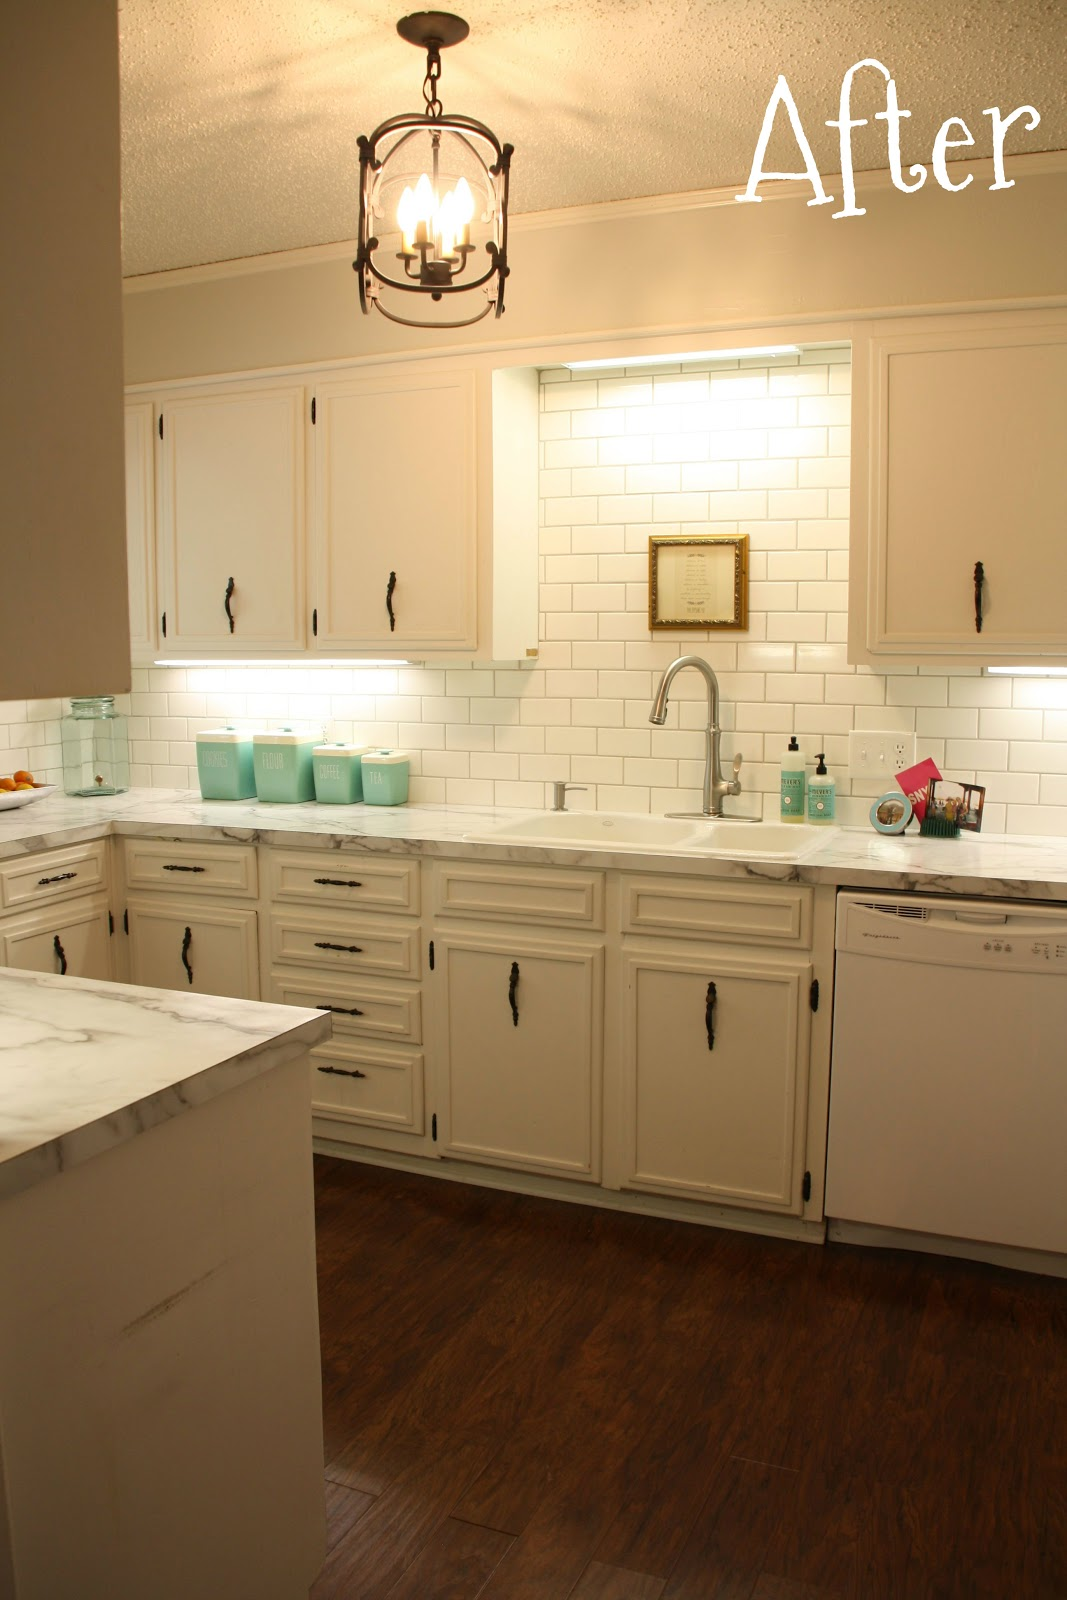 living the hyde life: the great kitchen remodel